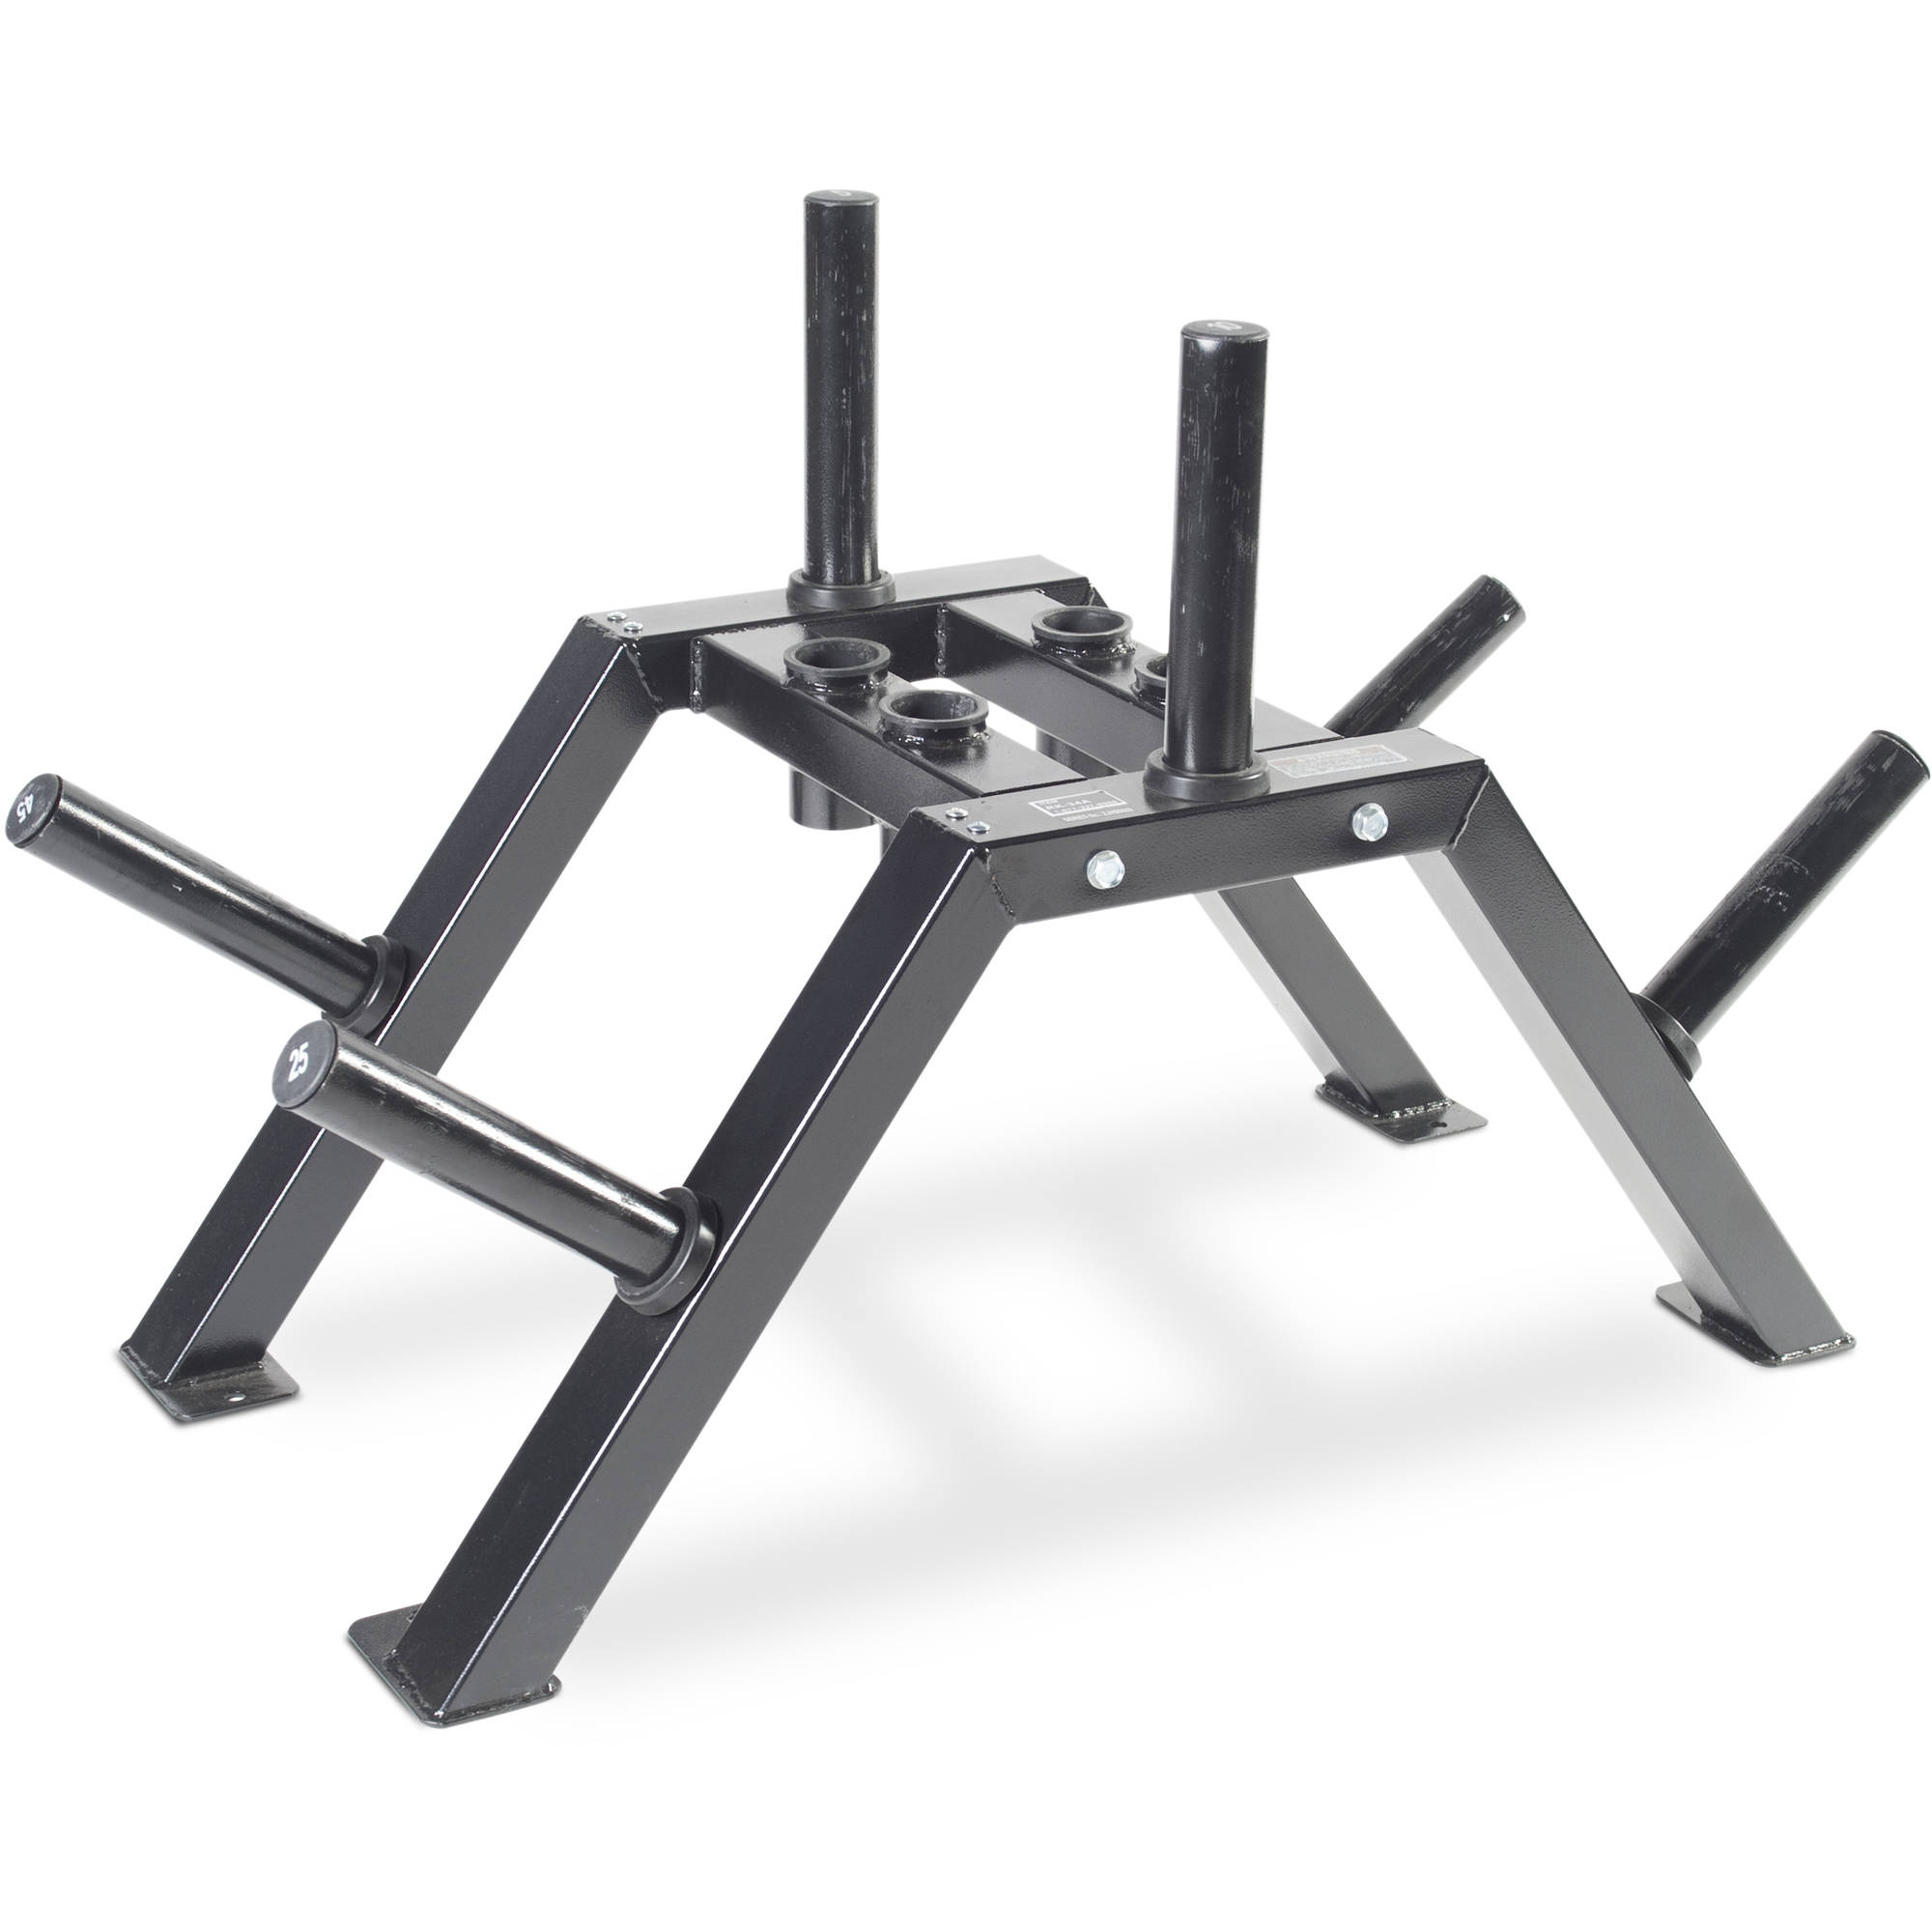 CAP Barbell Weight Plate and Barbell Storage Rack Olympic  sc 1 st  Walmart & CAP Barbell Weight Plate and Barbell Storage Rack Olympic - Walmart.com